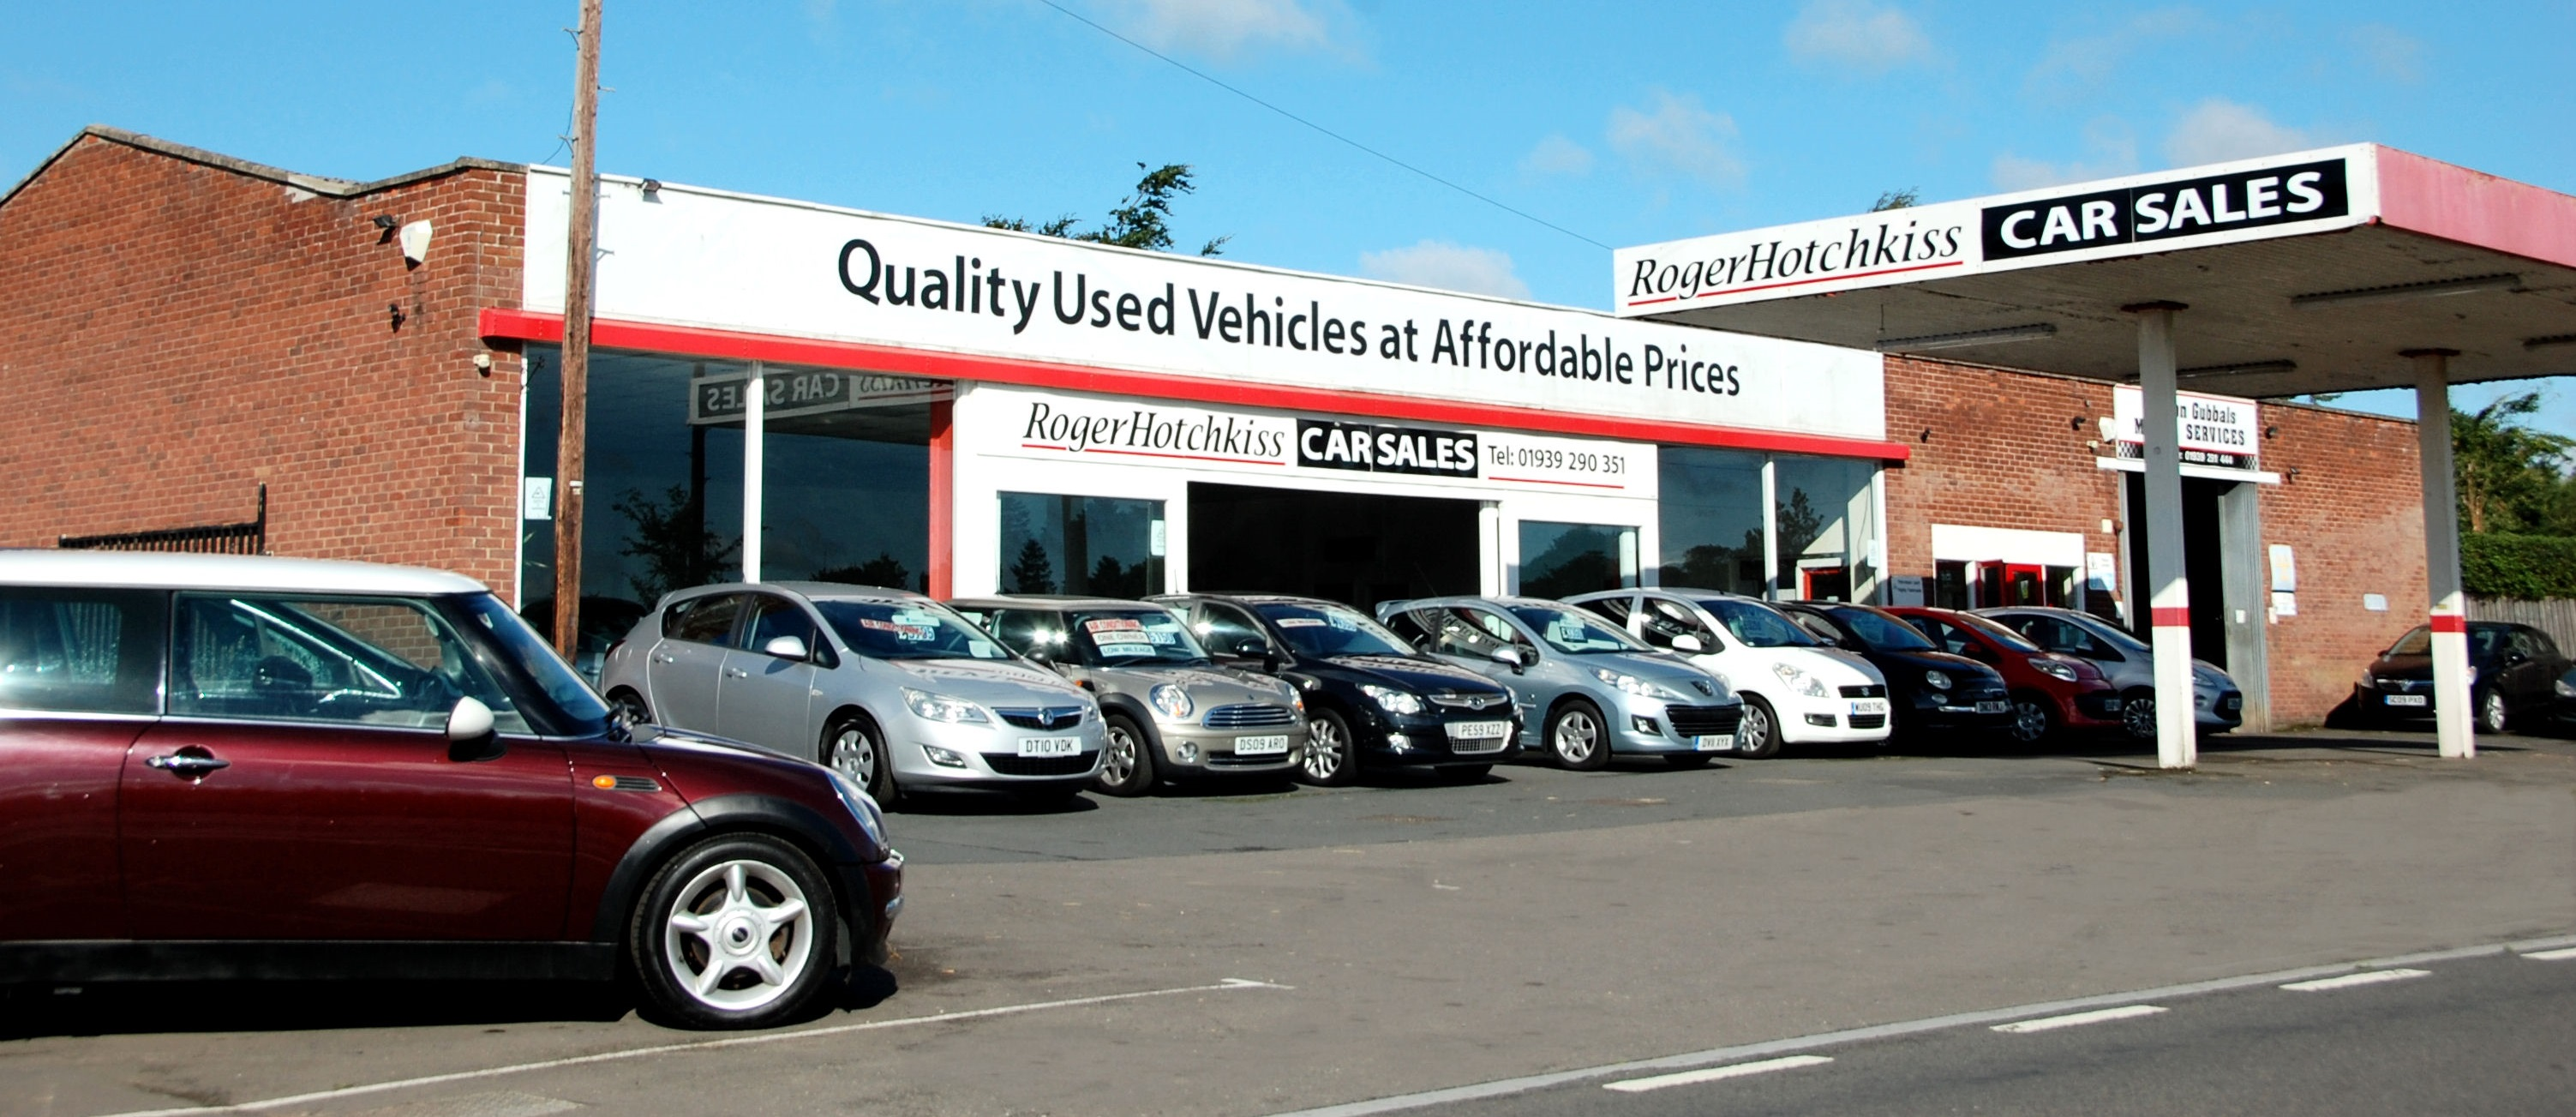 Cars for Sale Under 1500 Near Me Unique Quality Used Car Sales In Shrewsbury Shropshire